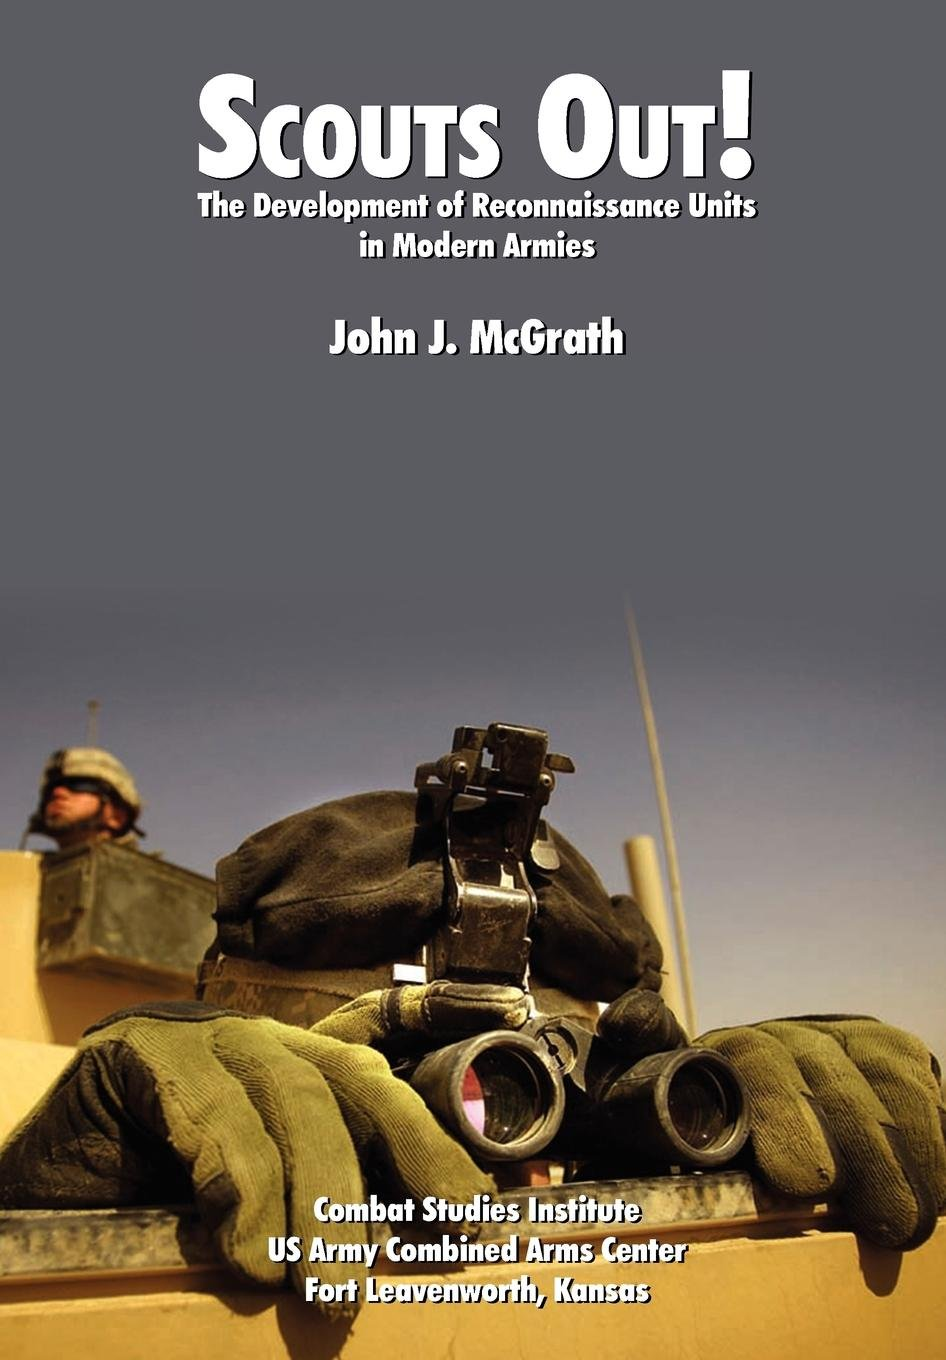 Scouts Out! The Development of Reconnaissance Units in Modern Armies pdf